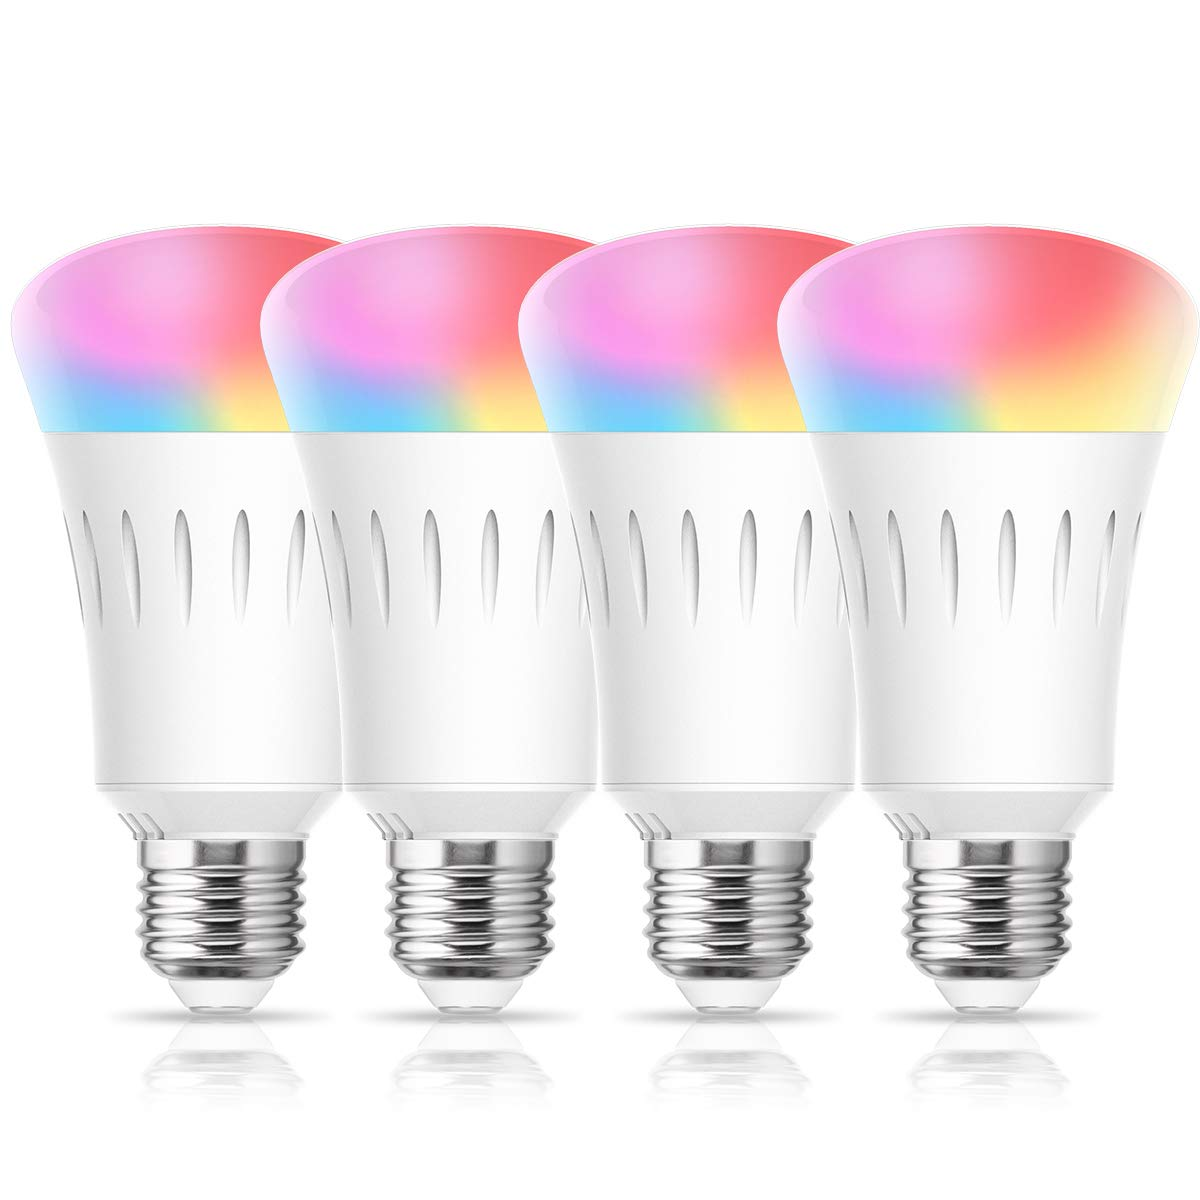 Smart LED WiFi Light Bubs, LOHAS LED Daylight RGB A19 Bulb Color Changing 60W Equivalent, Dimmable LED Lights Works with Alexa, Google Home and Siri (No Hub Required) 810LM E26 Base, UL Listed, 4 Pack